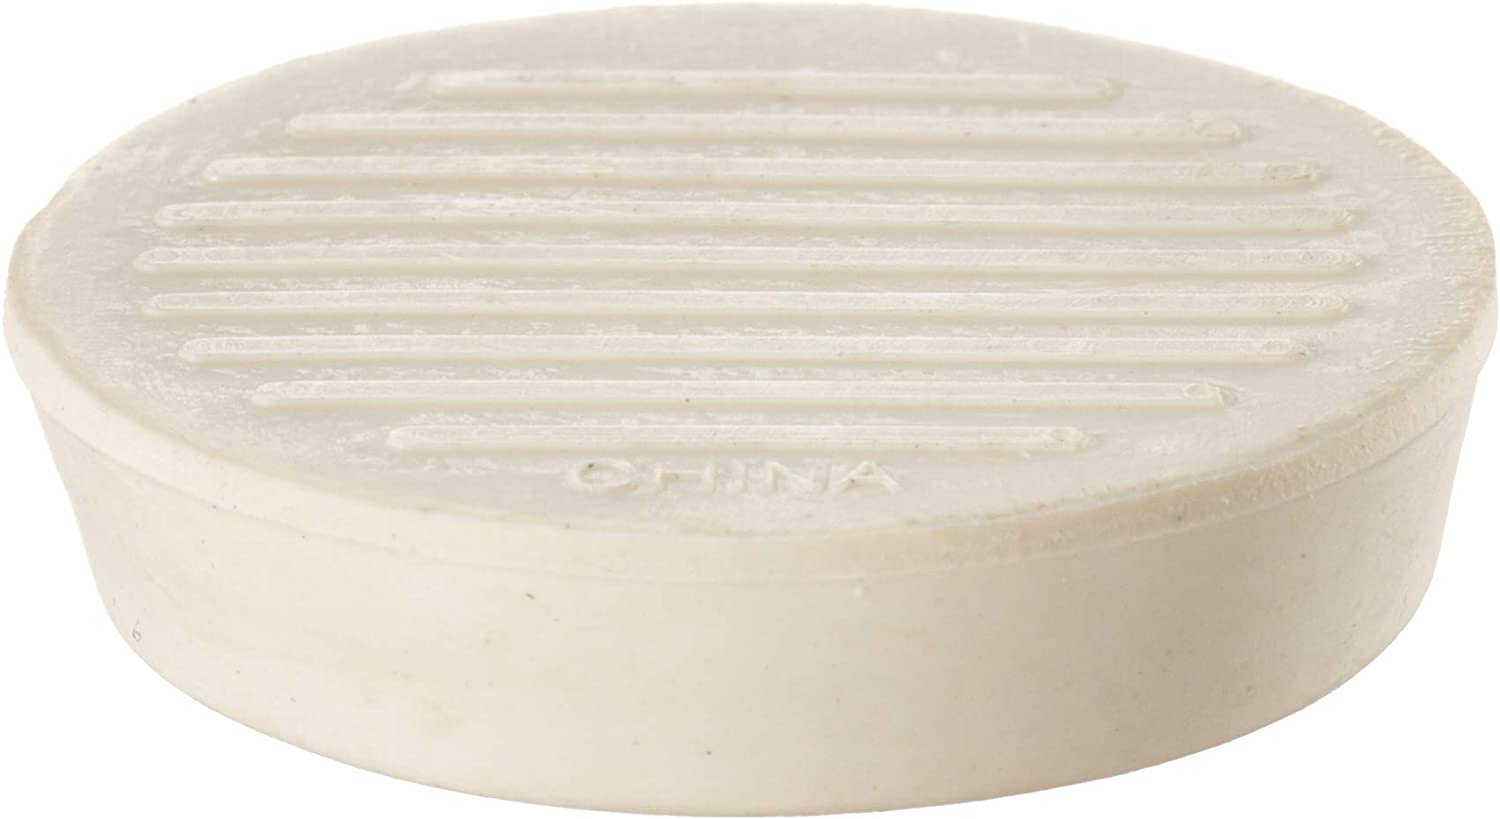 Shepherd Hardware 9165 1-1/2-Inch Round Rubber Furniture Cups, 4-Pack